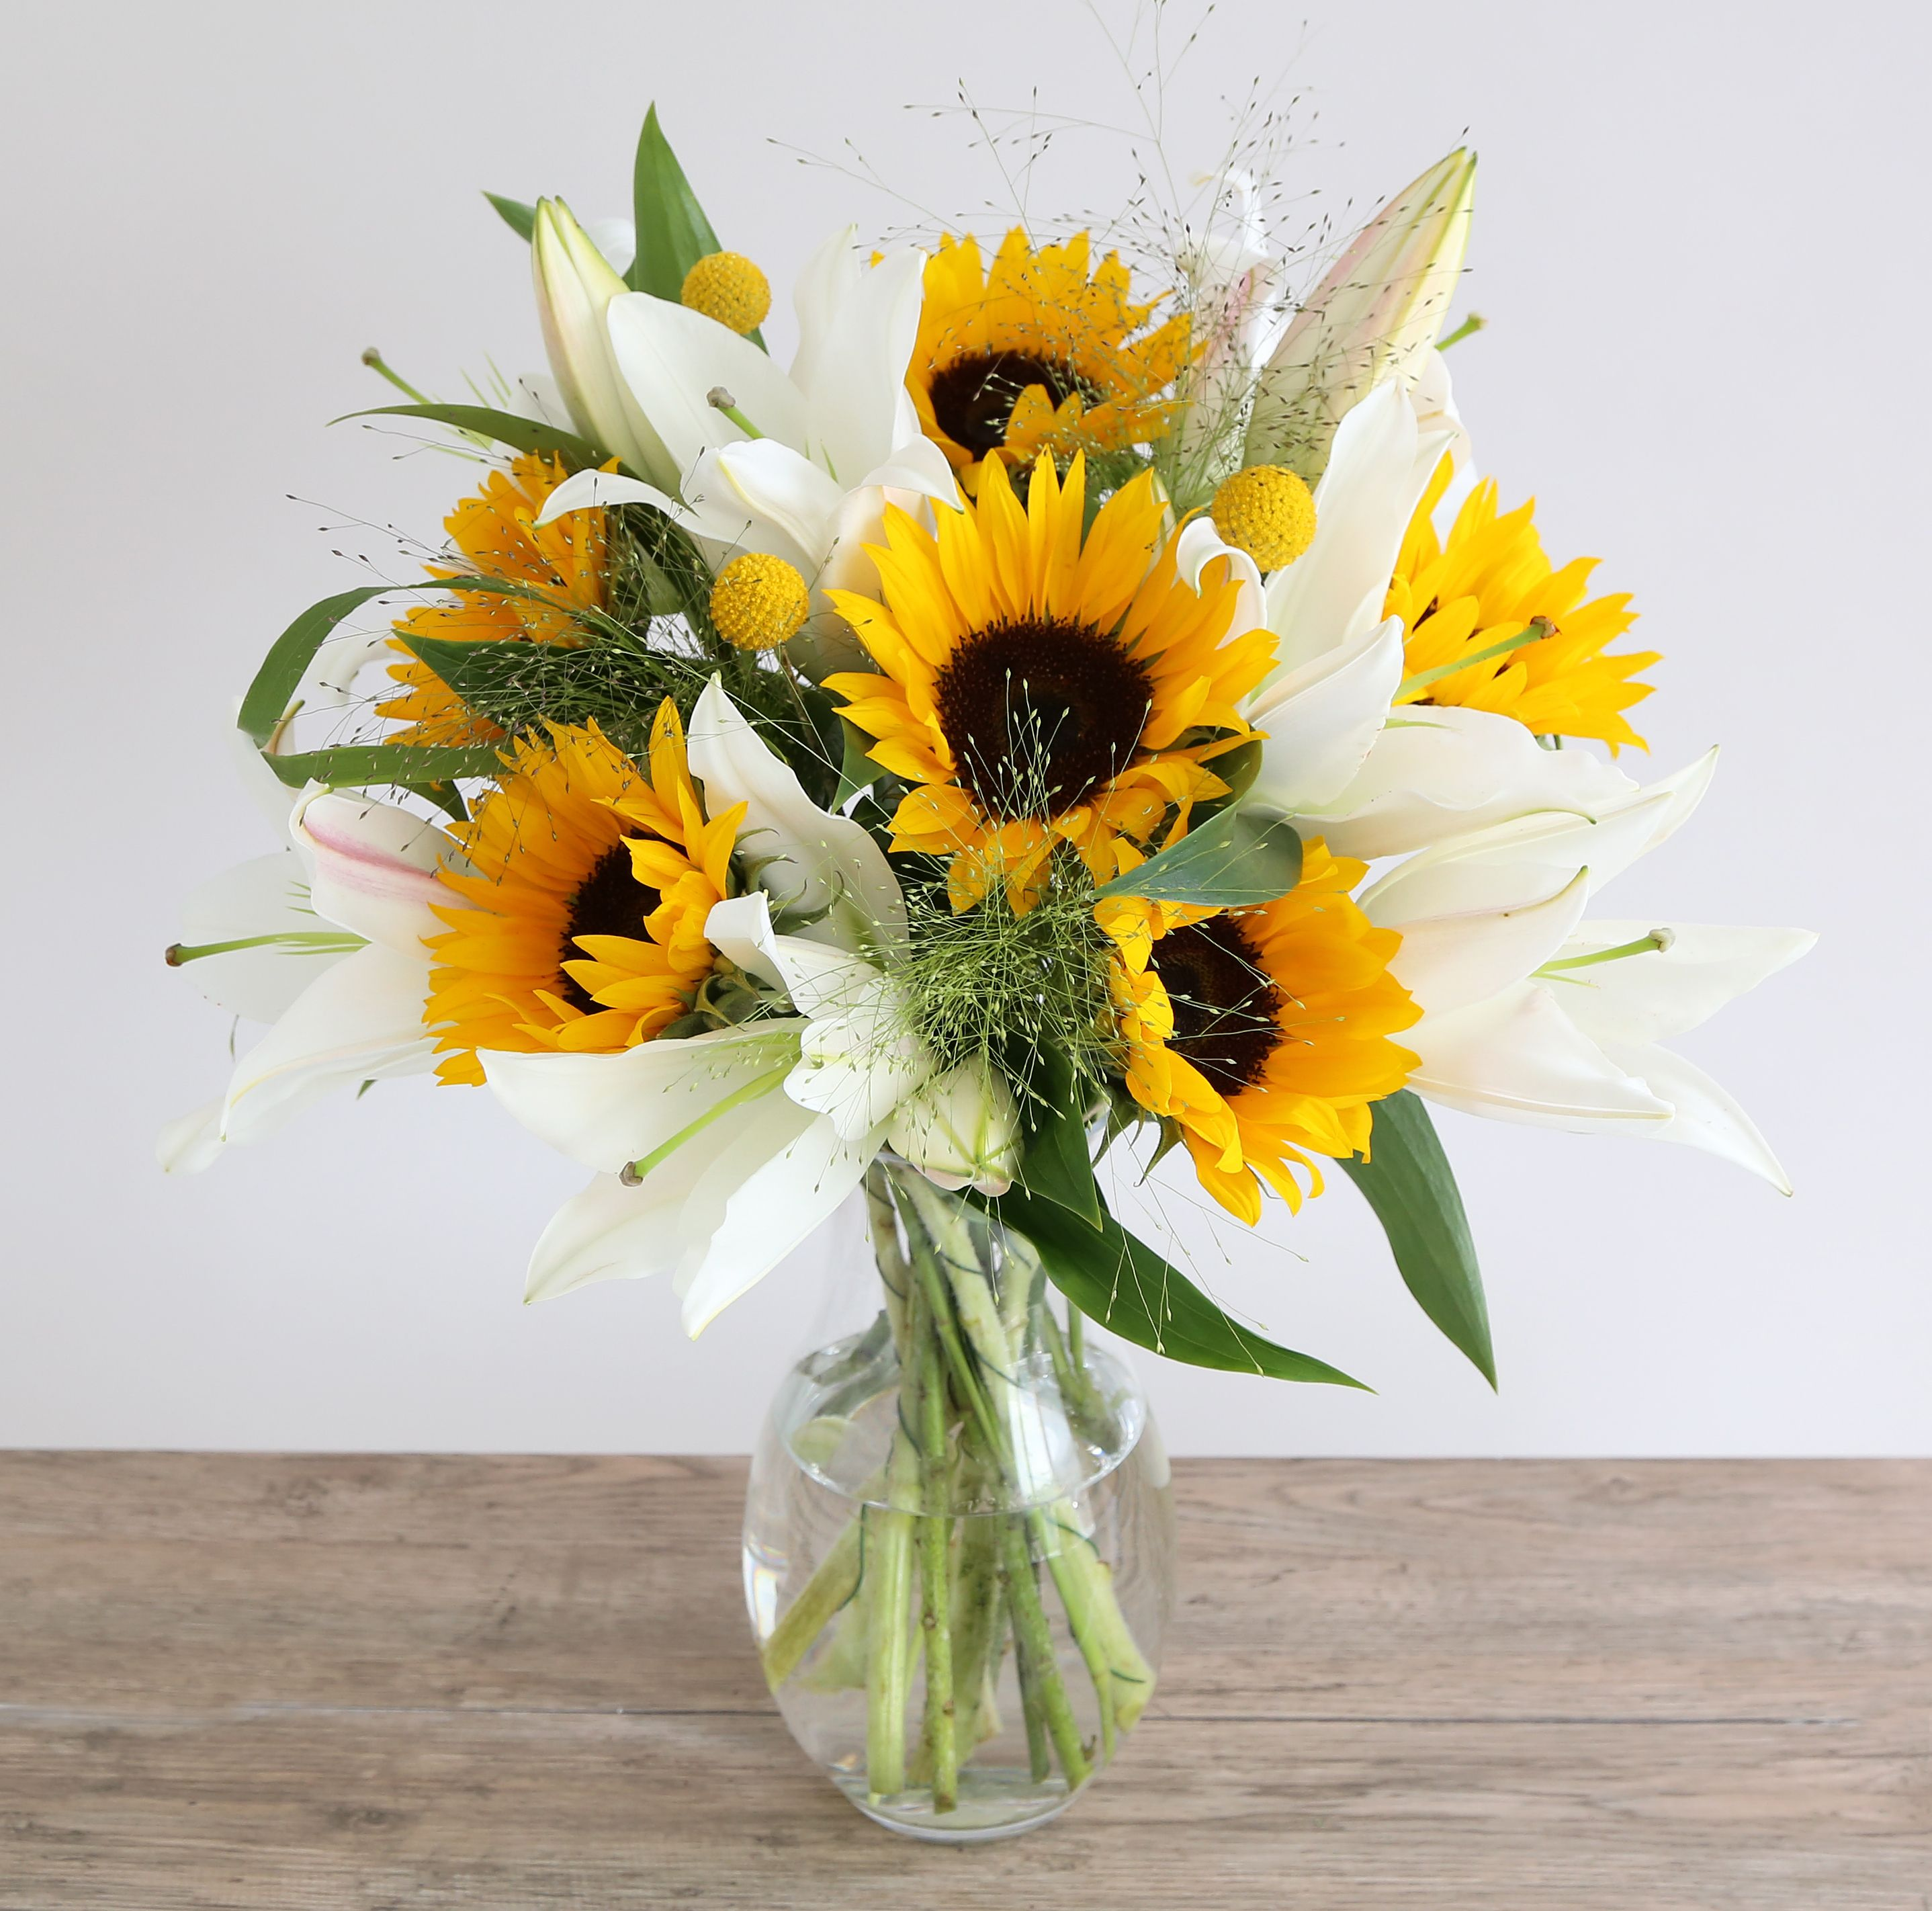 Hello pinteresters sierras bridal dreams pinterest wedding sunflower lillies bouquet 6 sunflower 3 white oriental lily 3 panicum 3 craspedia izmirmasajfo